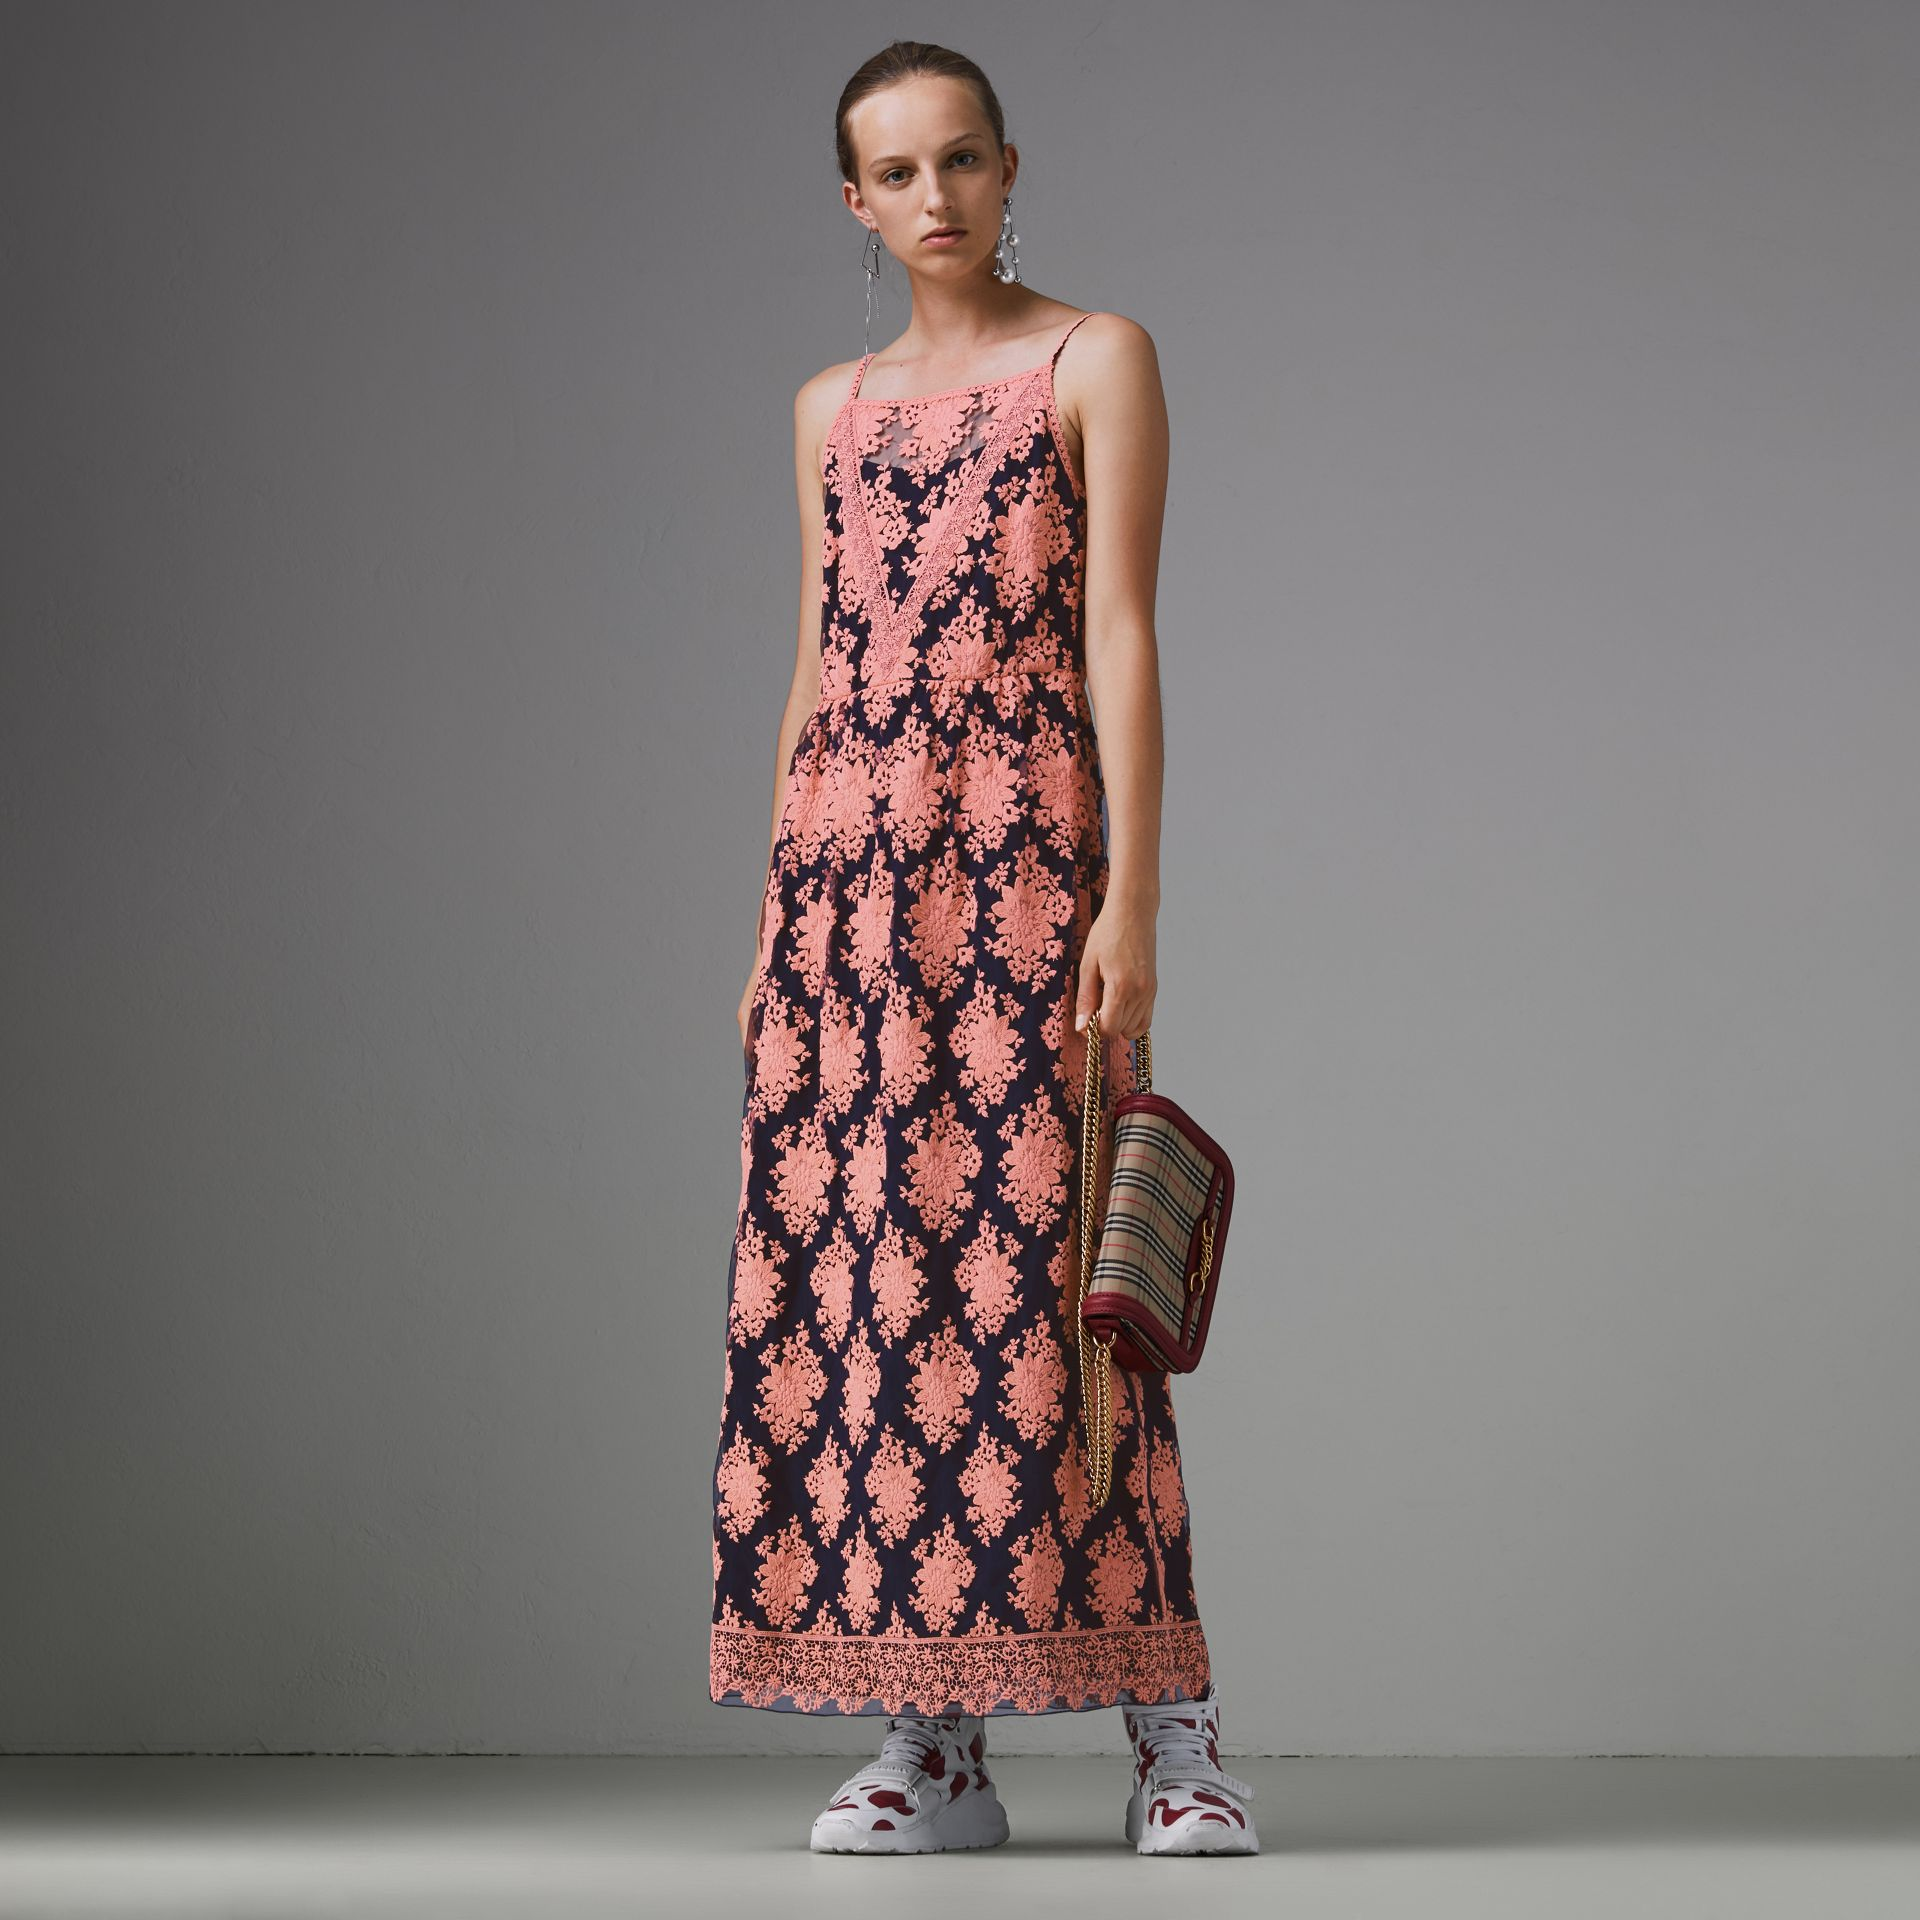 Floral-embroidered Sleeveless Dress in Rose/midnight Blue - Women | Burberry - gallery image 4